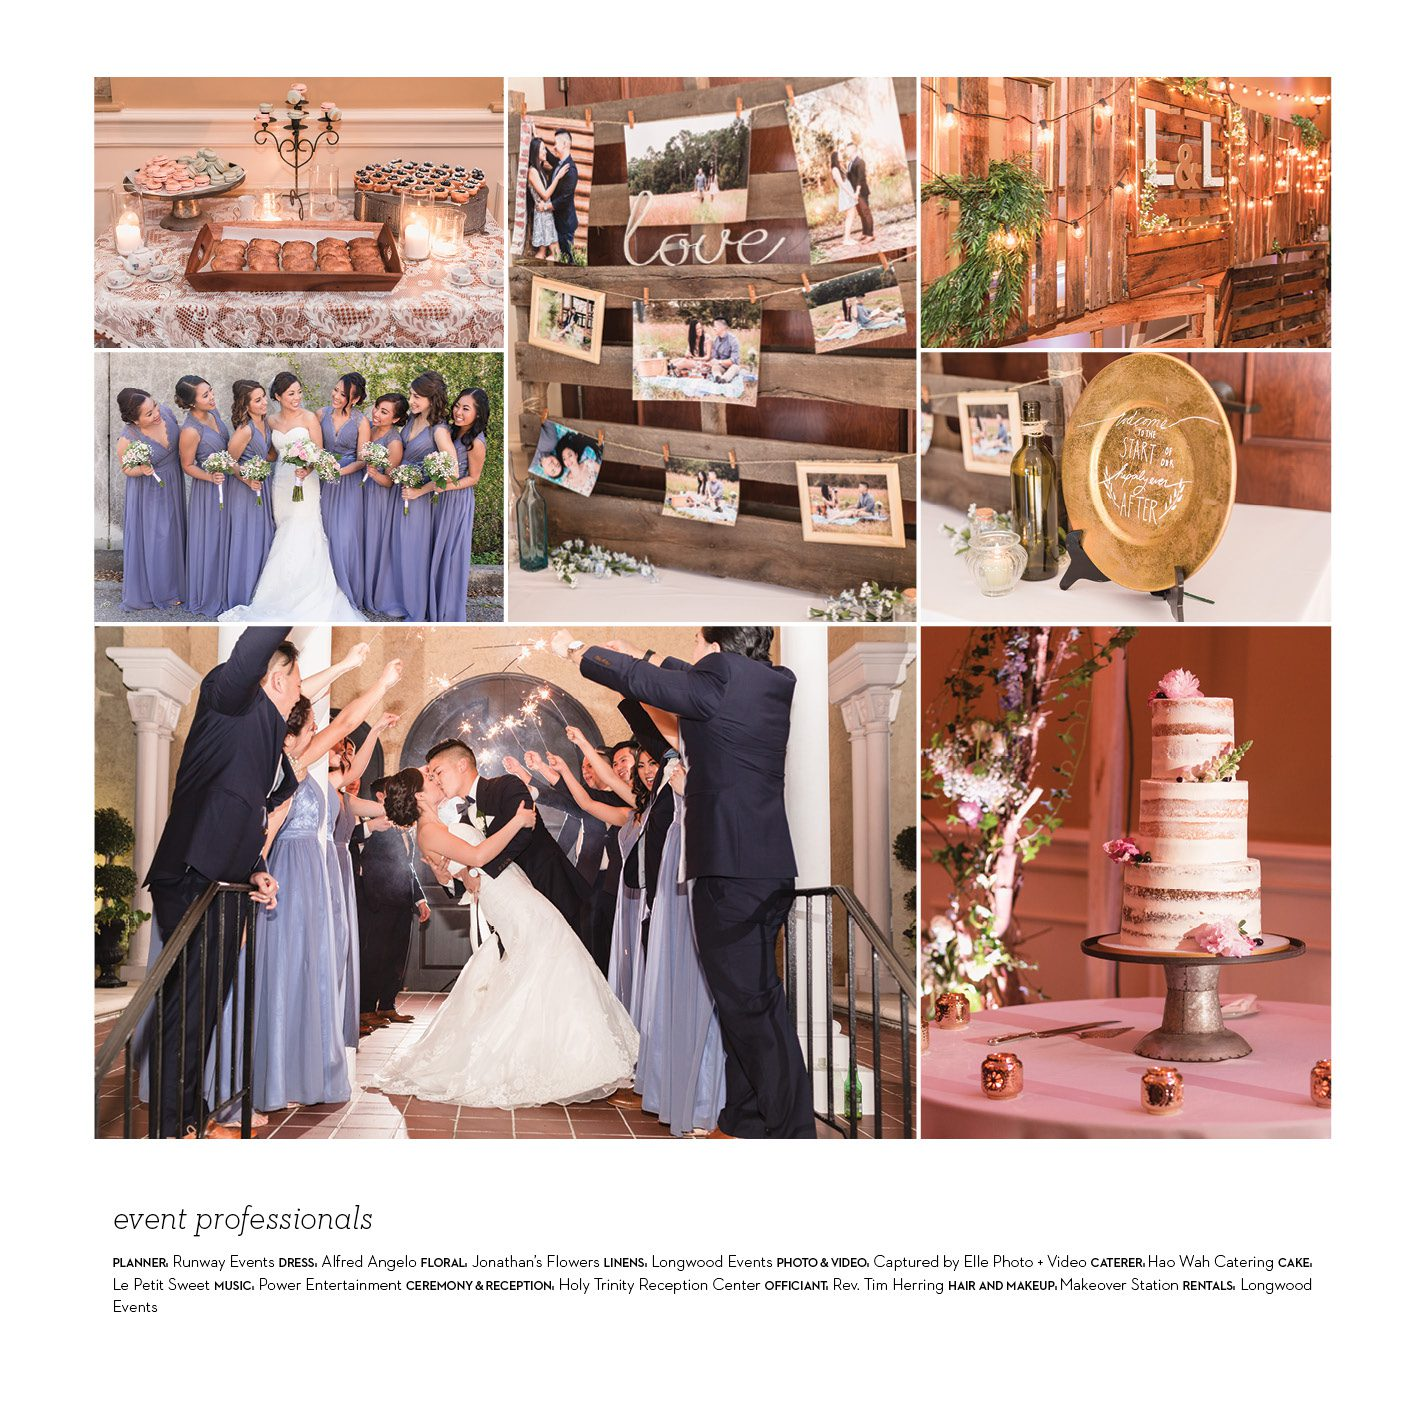 Orlando wedding and engagement photographer featured in Central Florida Celebrations & Events magazine for wedding at the Holy Trinity Reception center photography